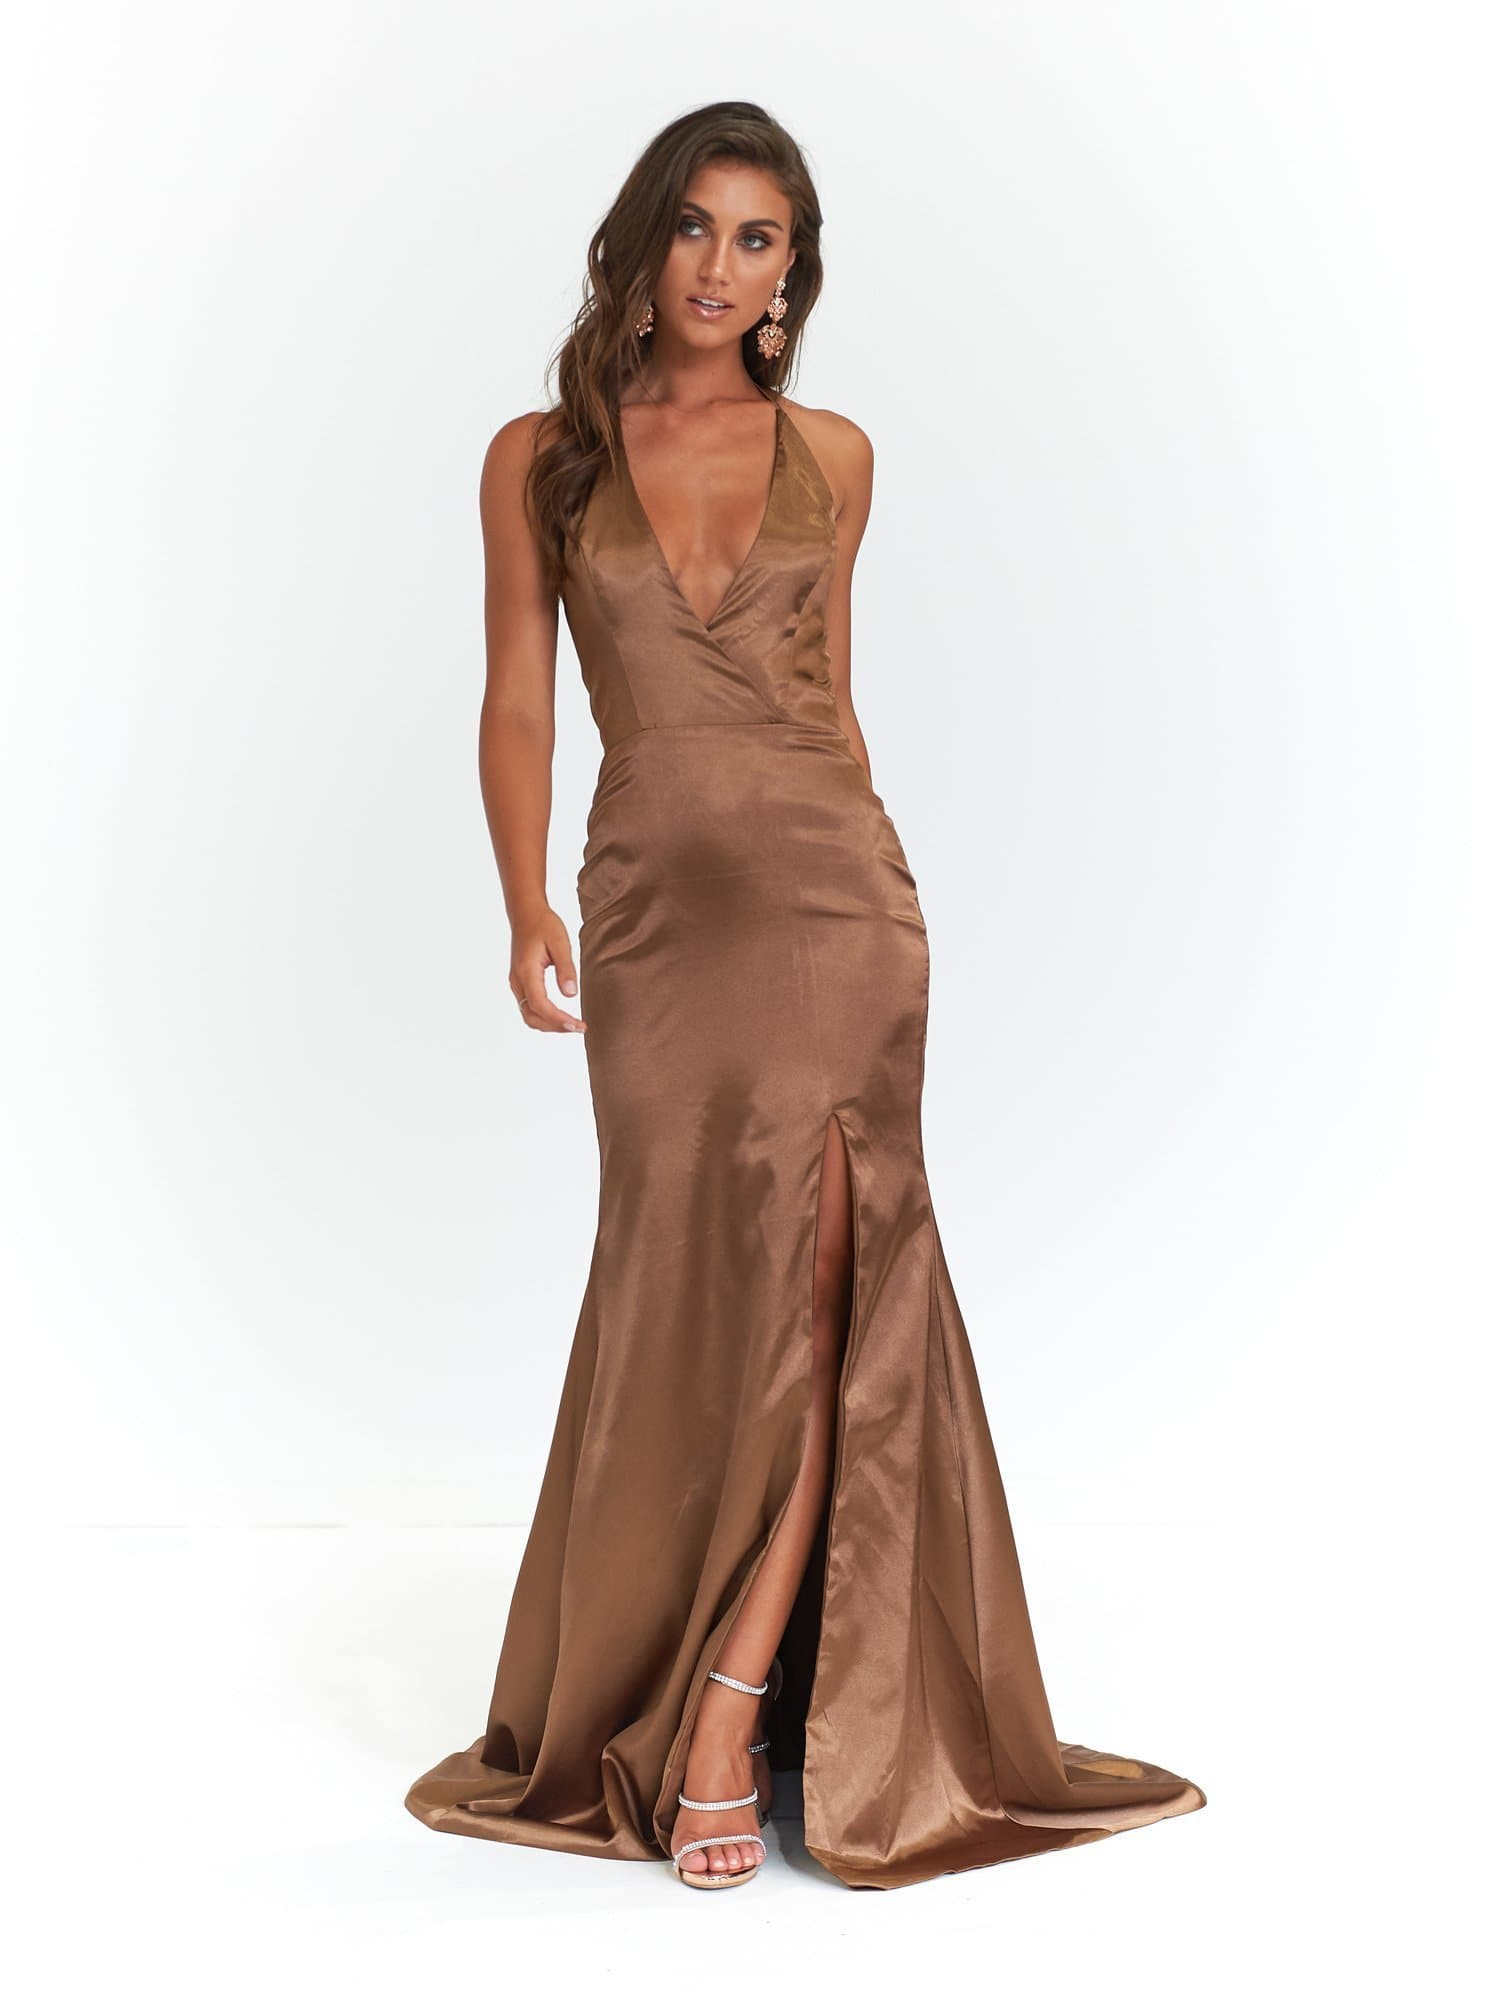 A&N Alyssa - Satin Mocha Gown with V Neck and Low Back